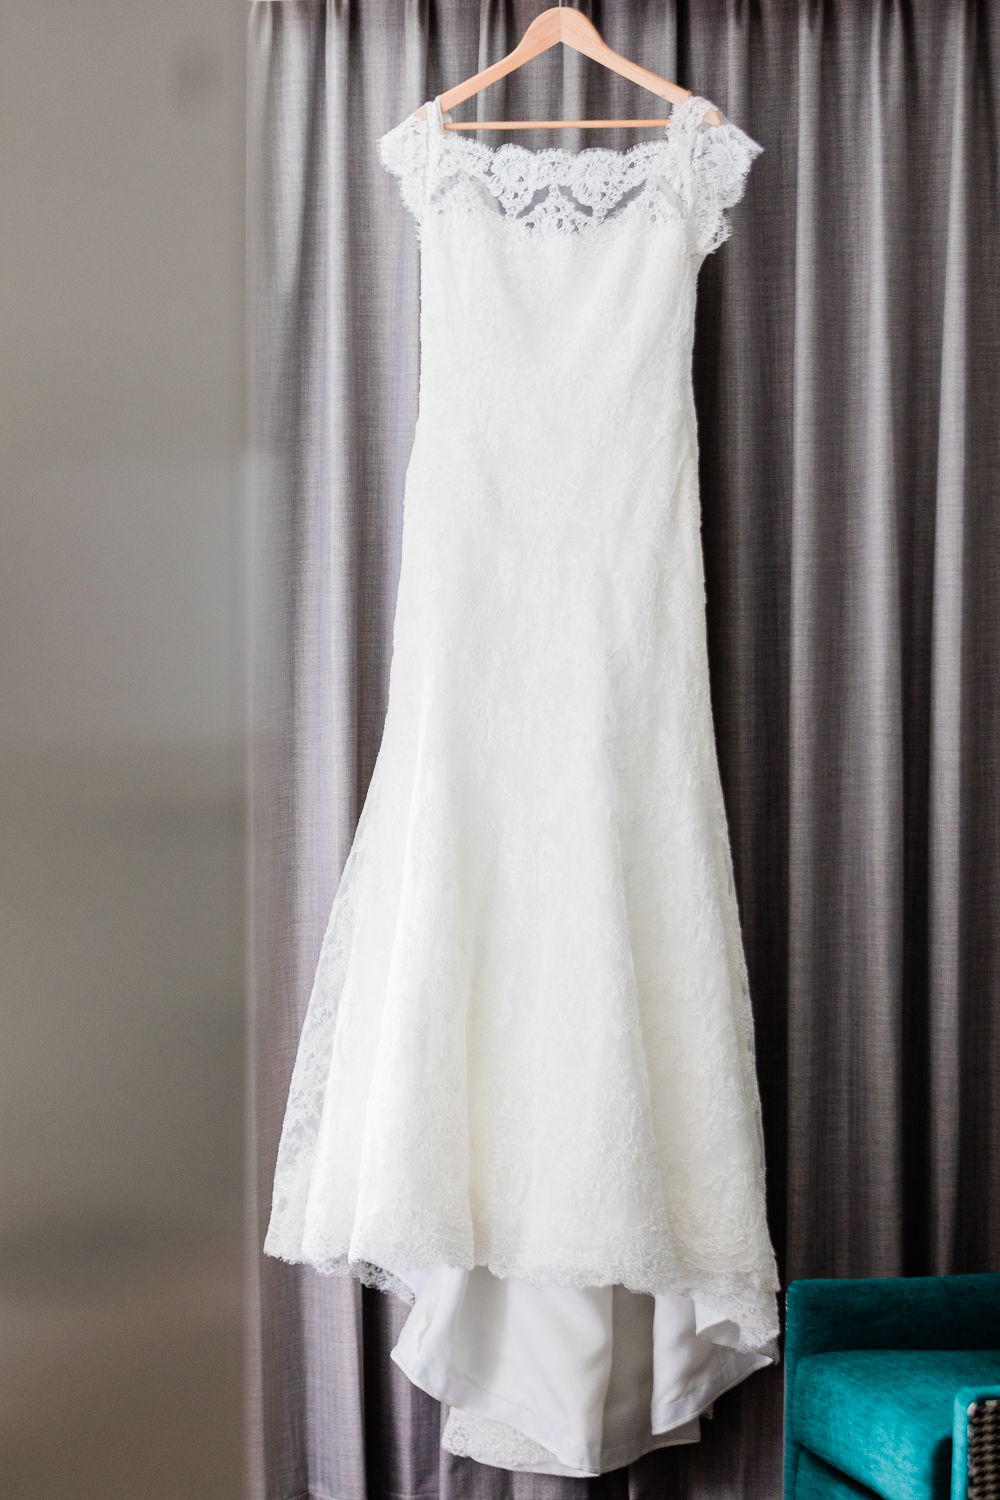 Stunning Monique Lhulier gown from L'elite bridal